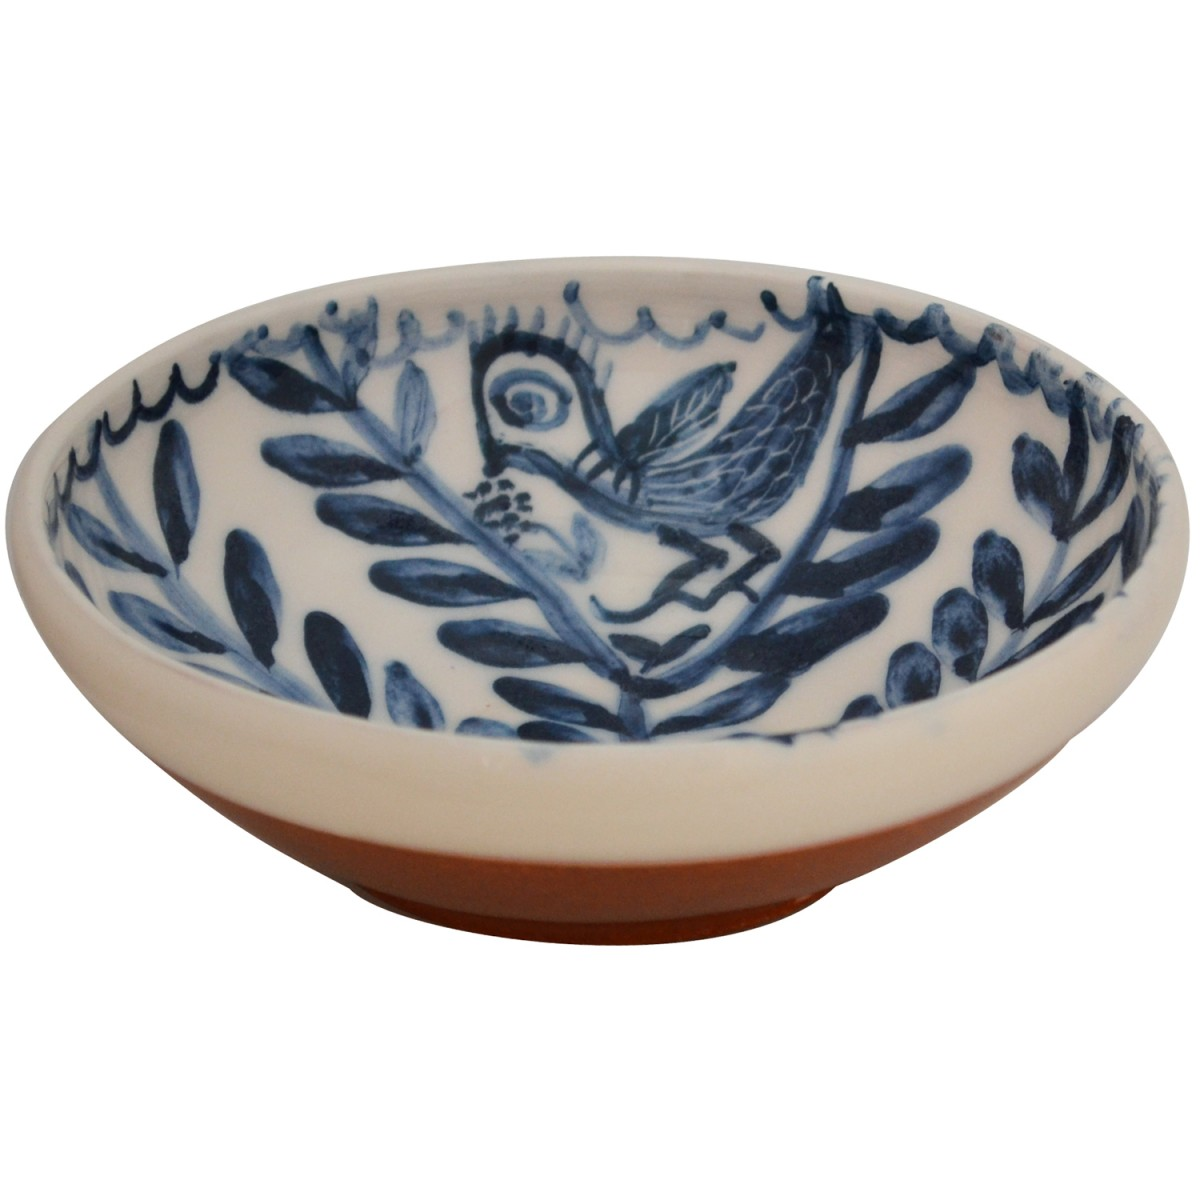 Decorative bowl for coffee table-Bird on Tree-1